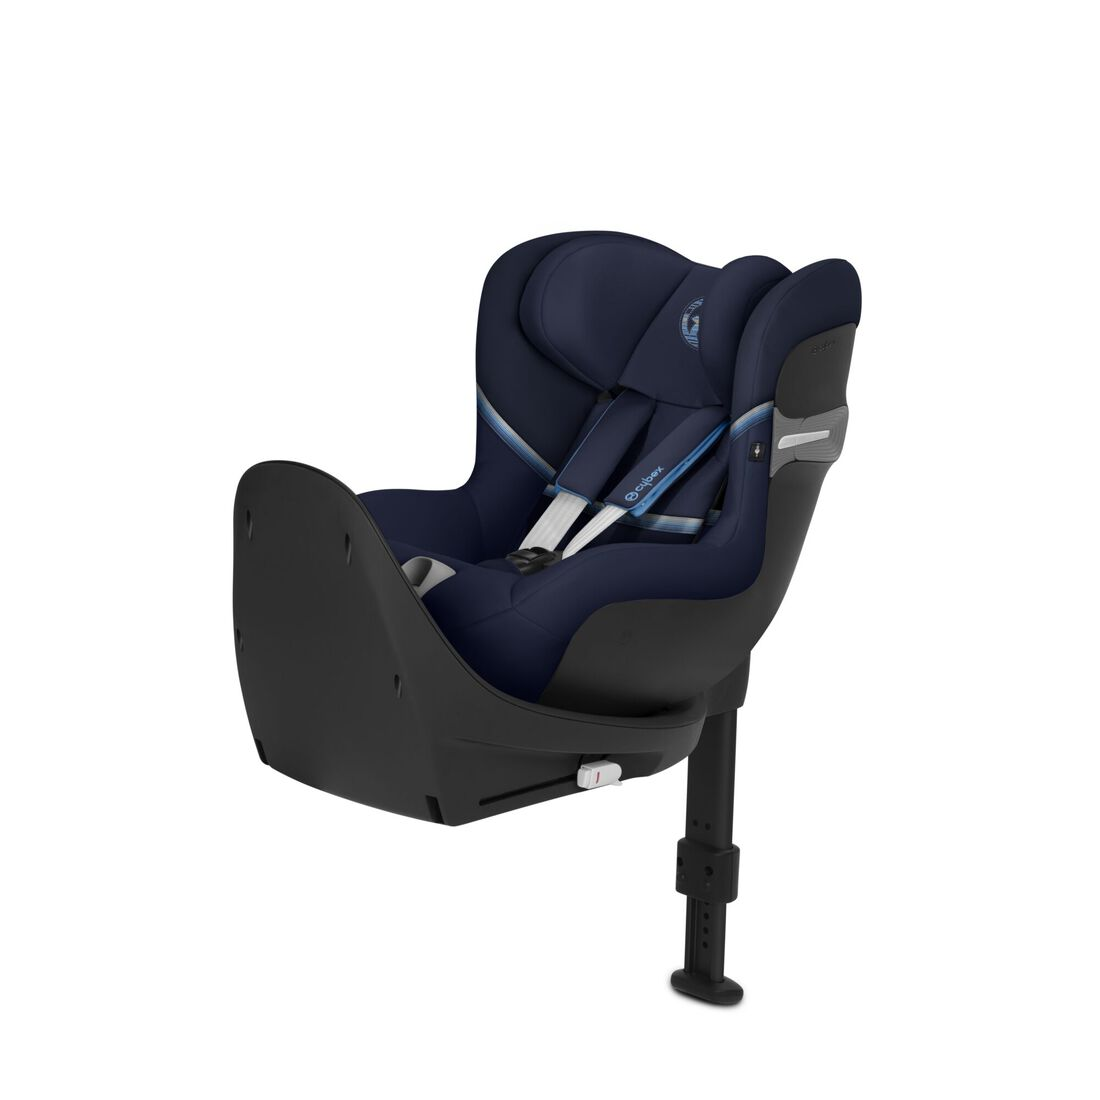 CYBEX Sirona SX2 i-Size - Navy Blue in Navy Blue large image number 1